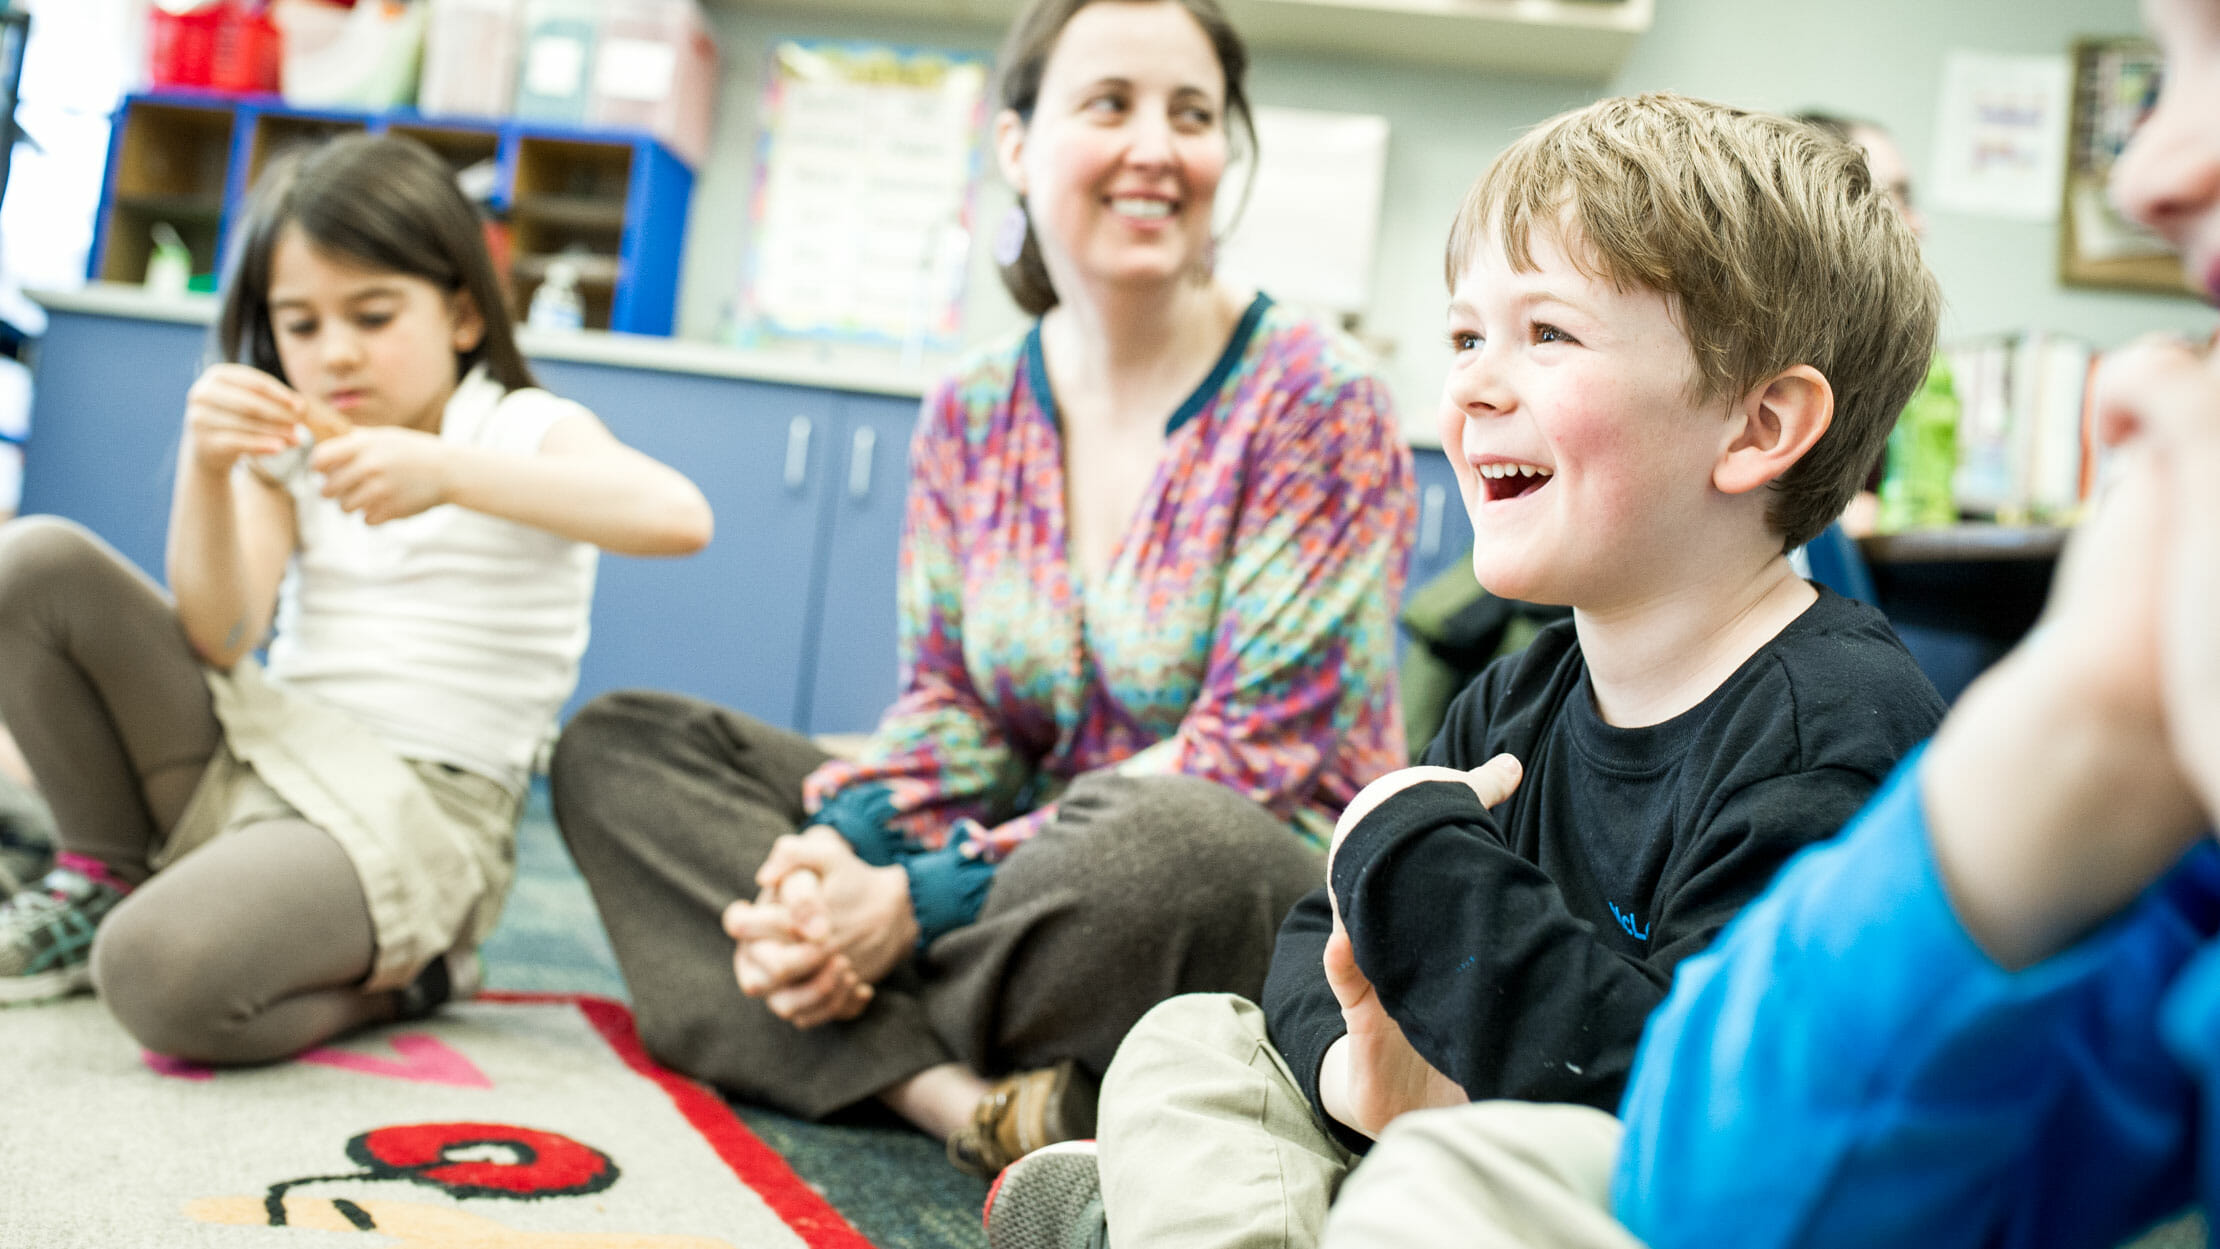 Laughing boy sits on classroom floor